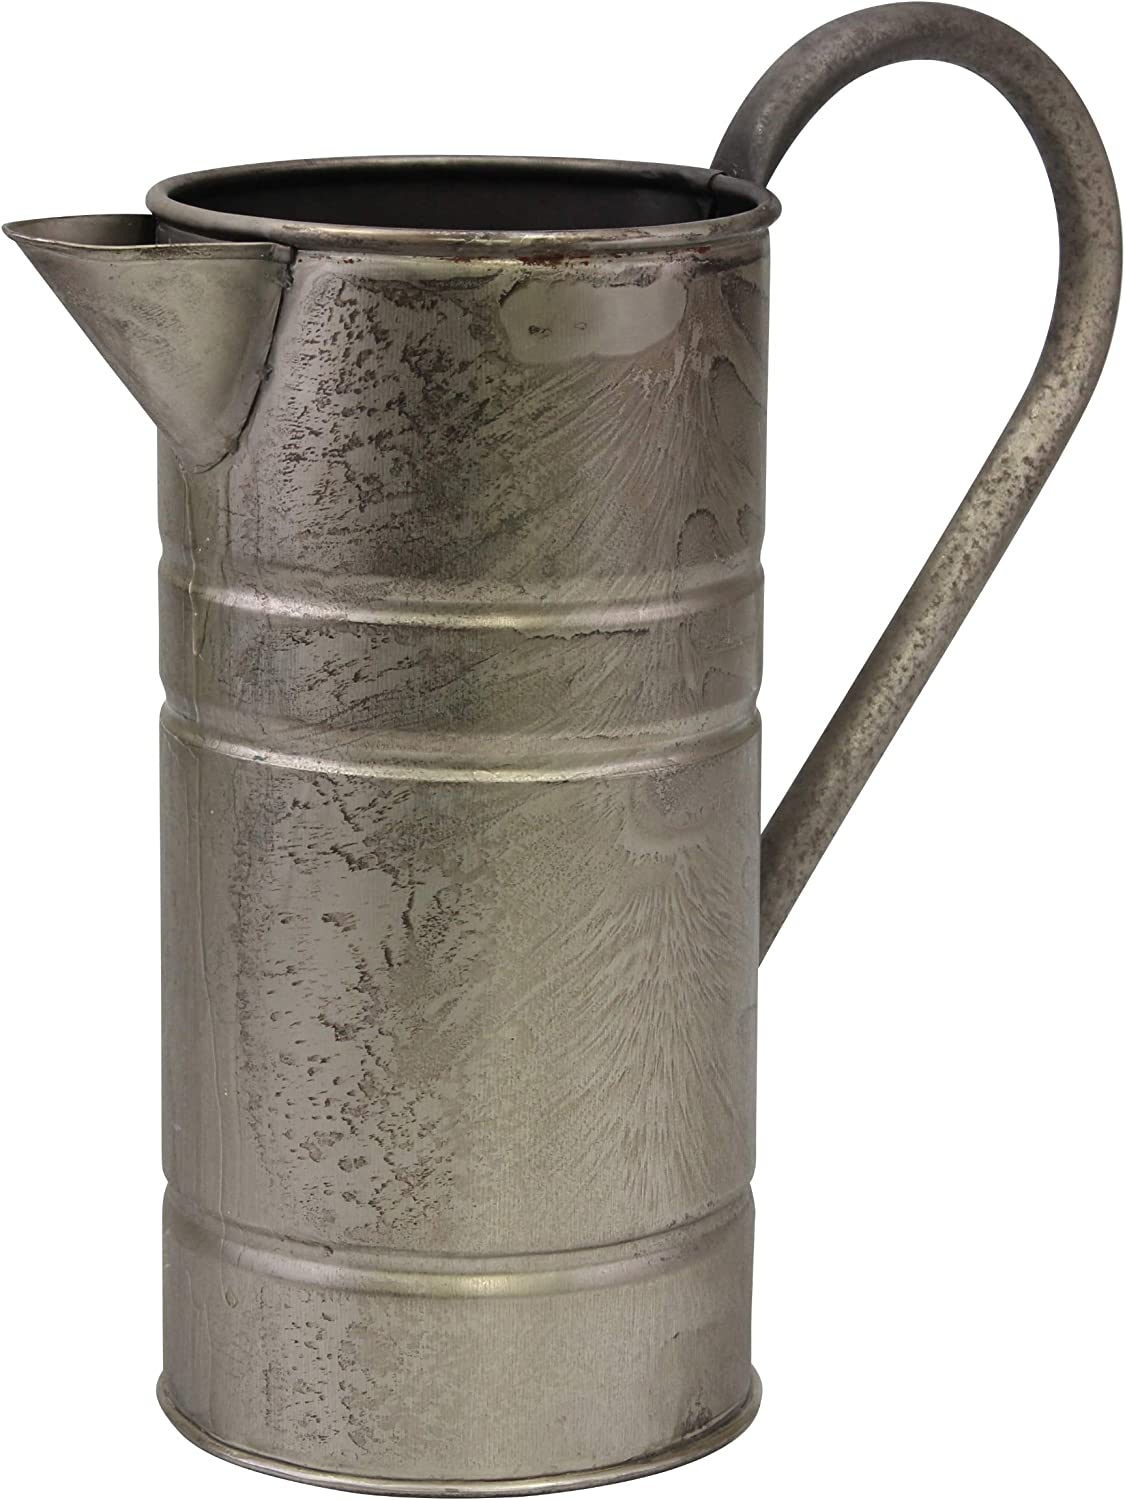 CKK Industrial Stonebriar Decorative Vintage Silver Metal Drinking Pitcher with Handle, Farmhouse Home Decor Accents